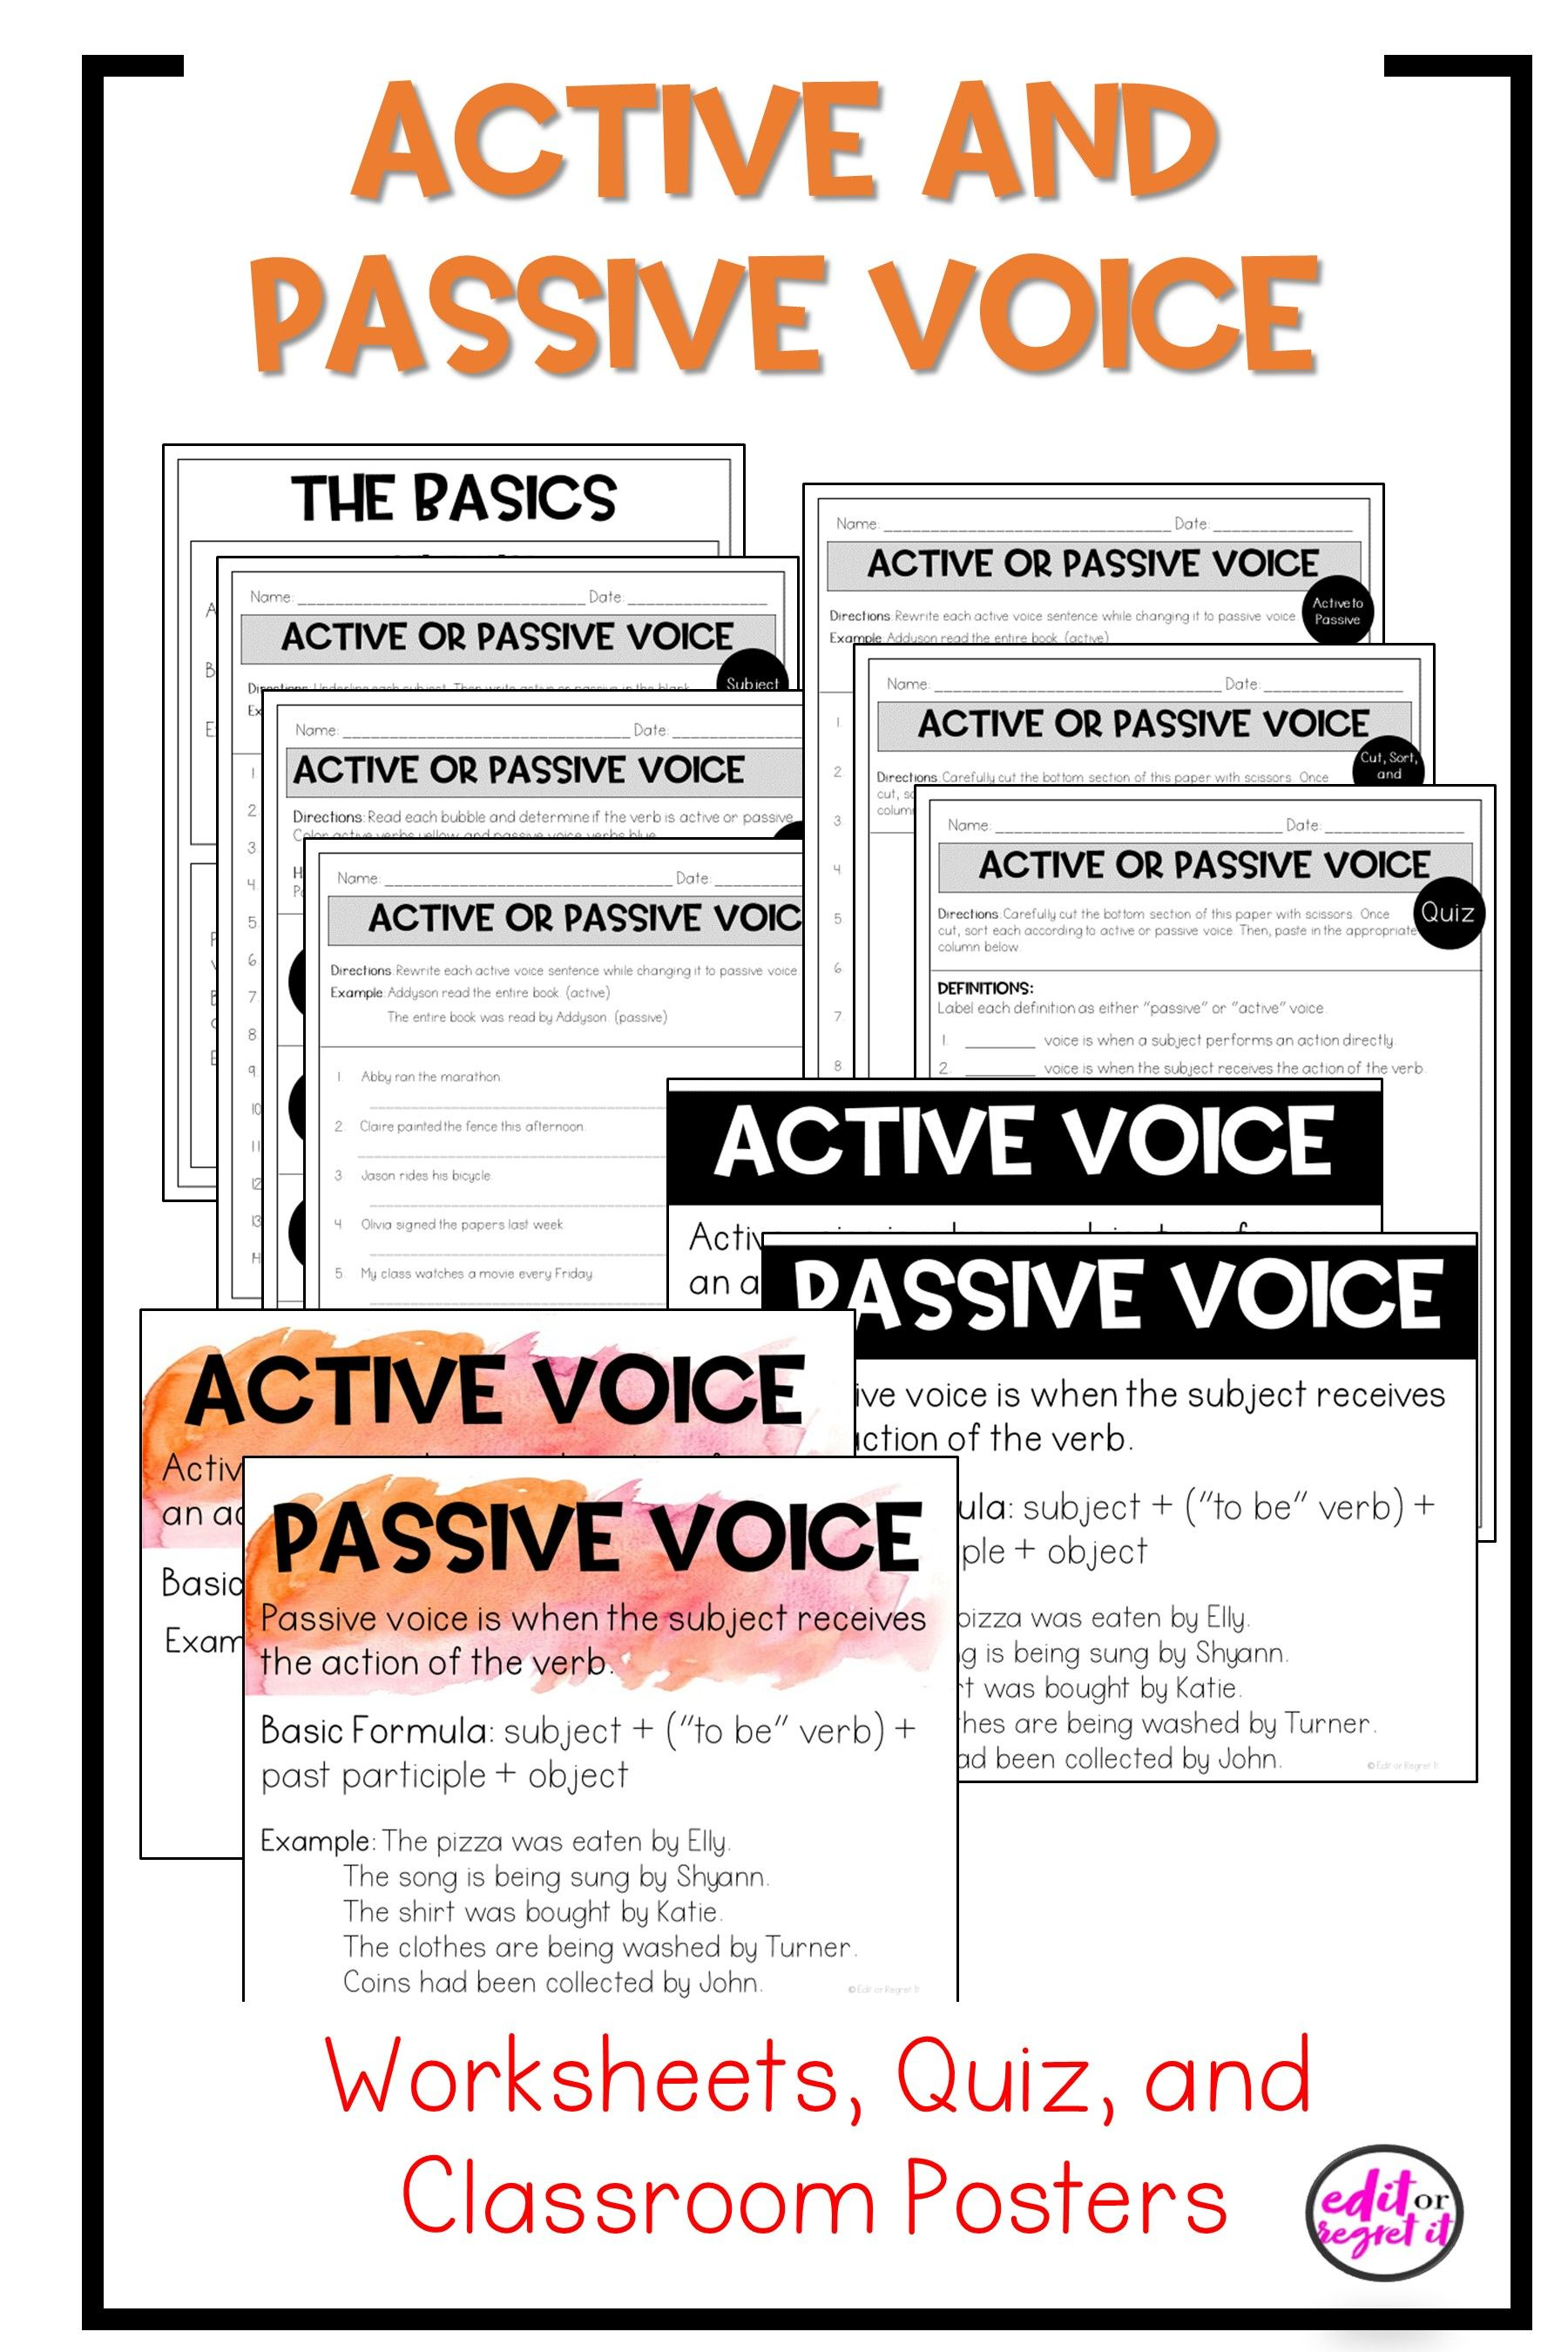 Active And Passive Voice Worksheets Quiz And Classroom